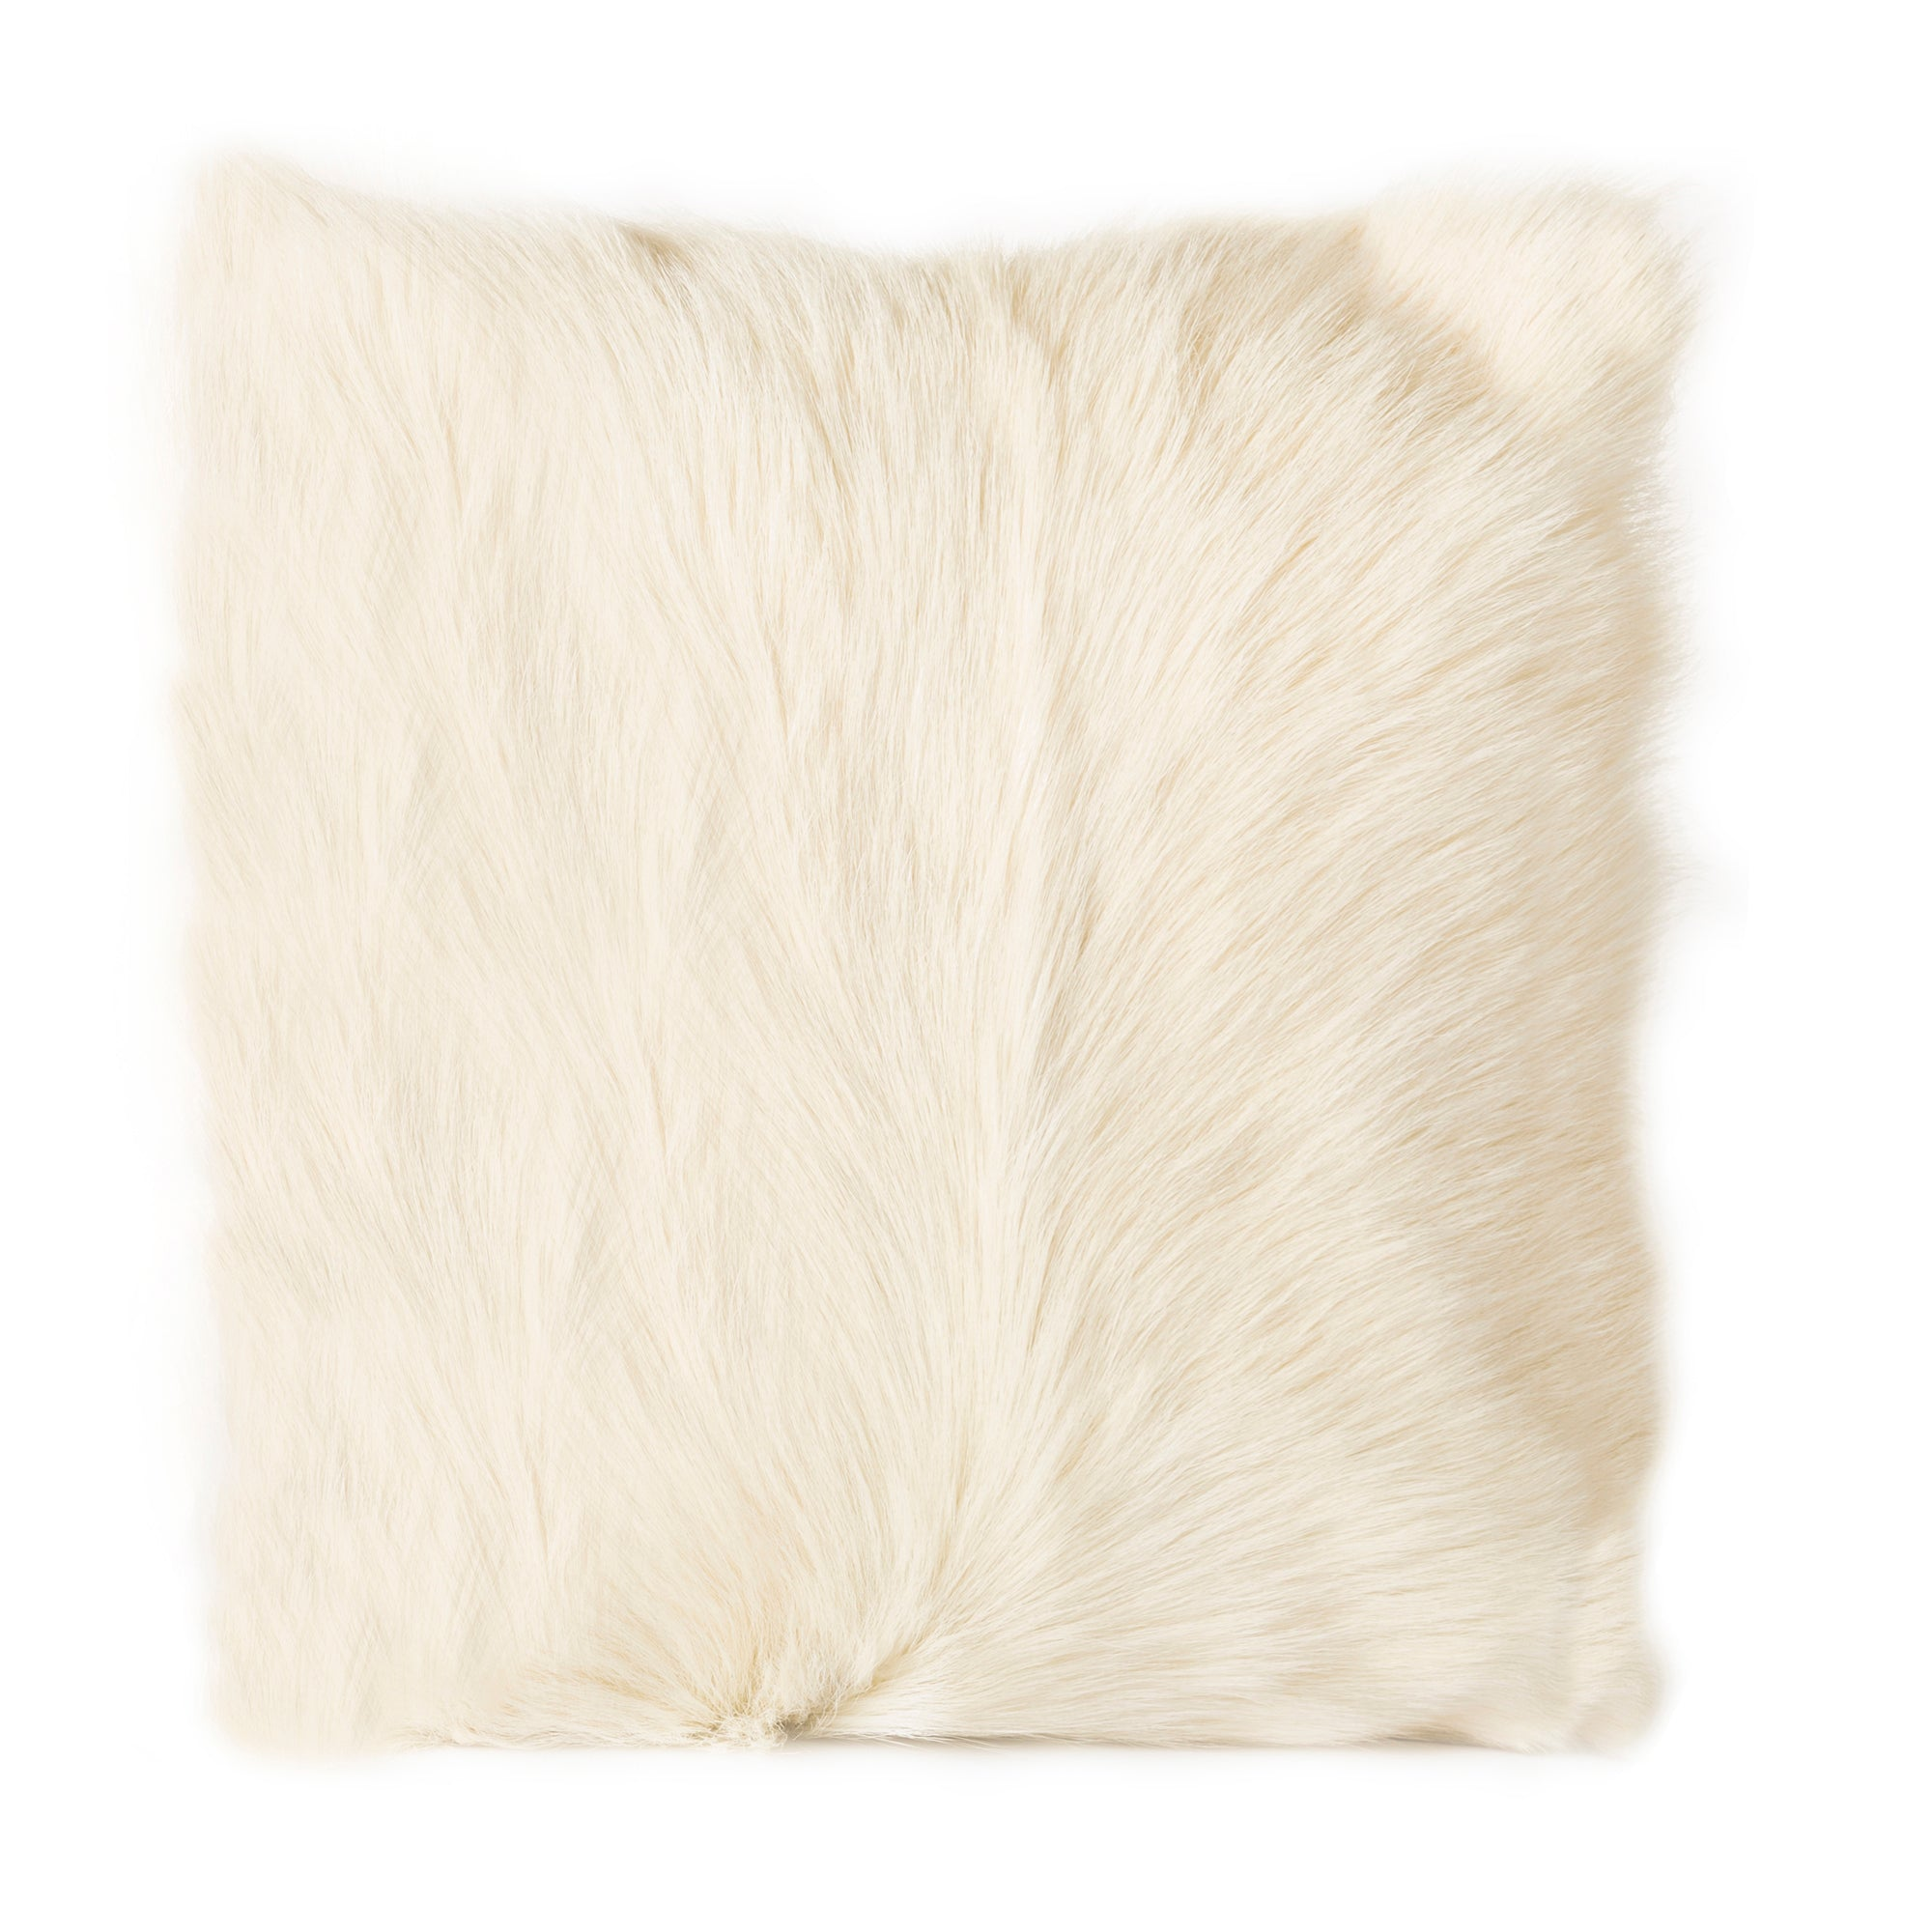 Goat fur pillow, natural - Tops-Dress